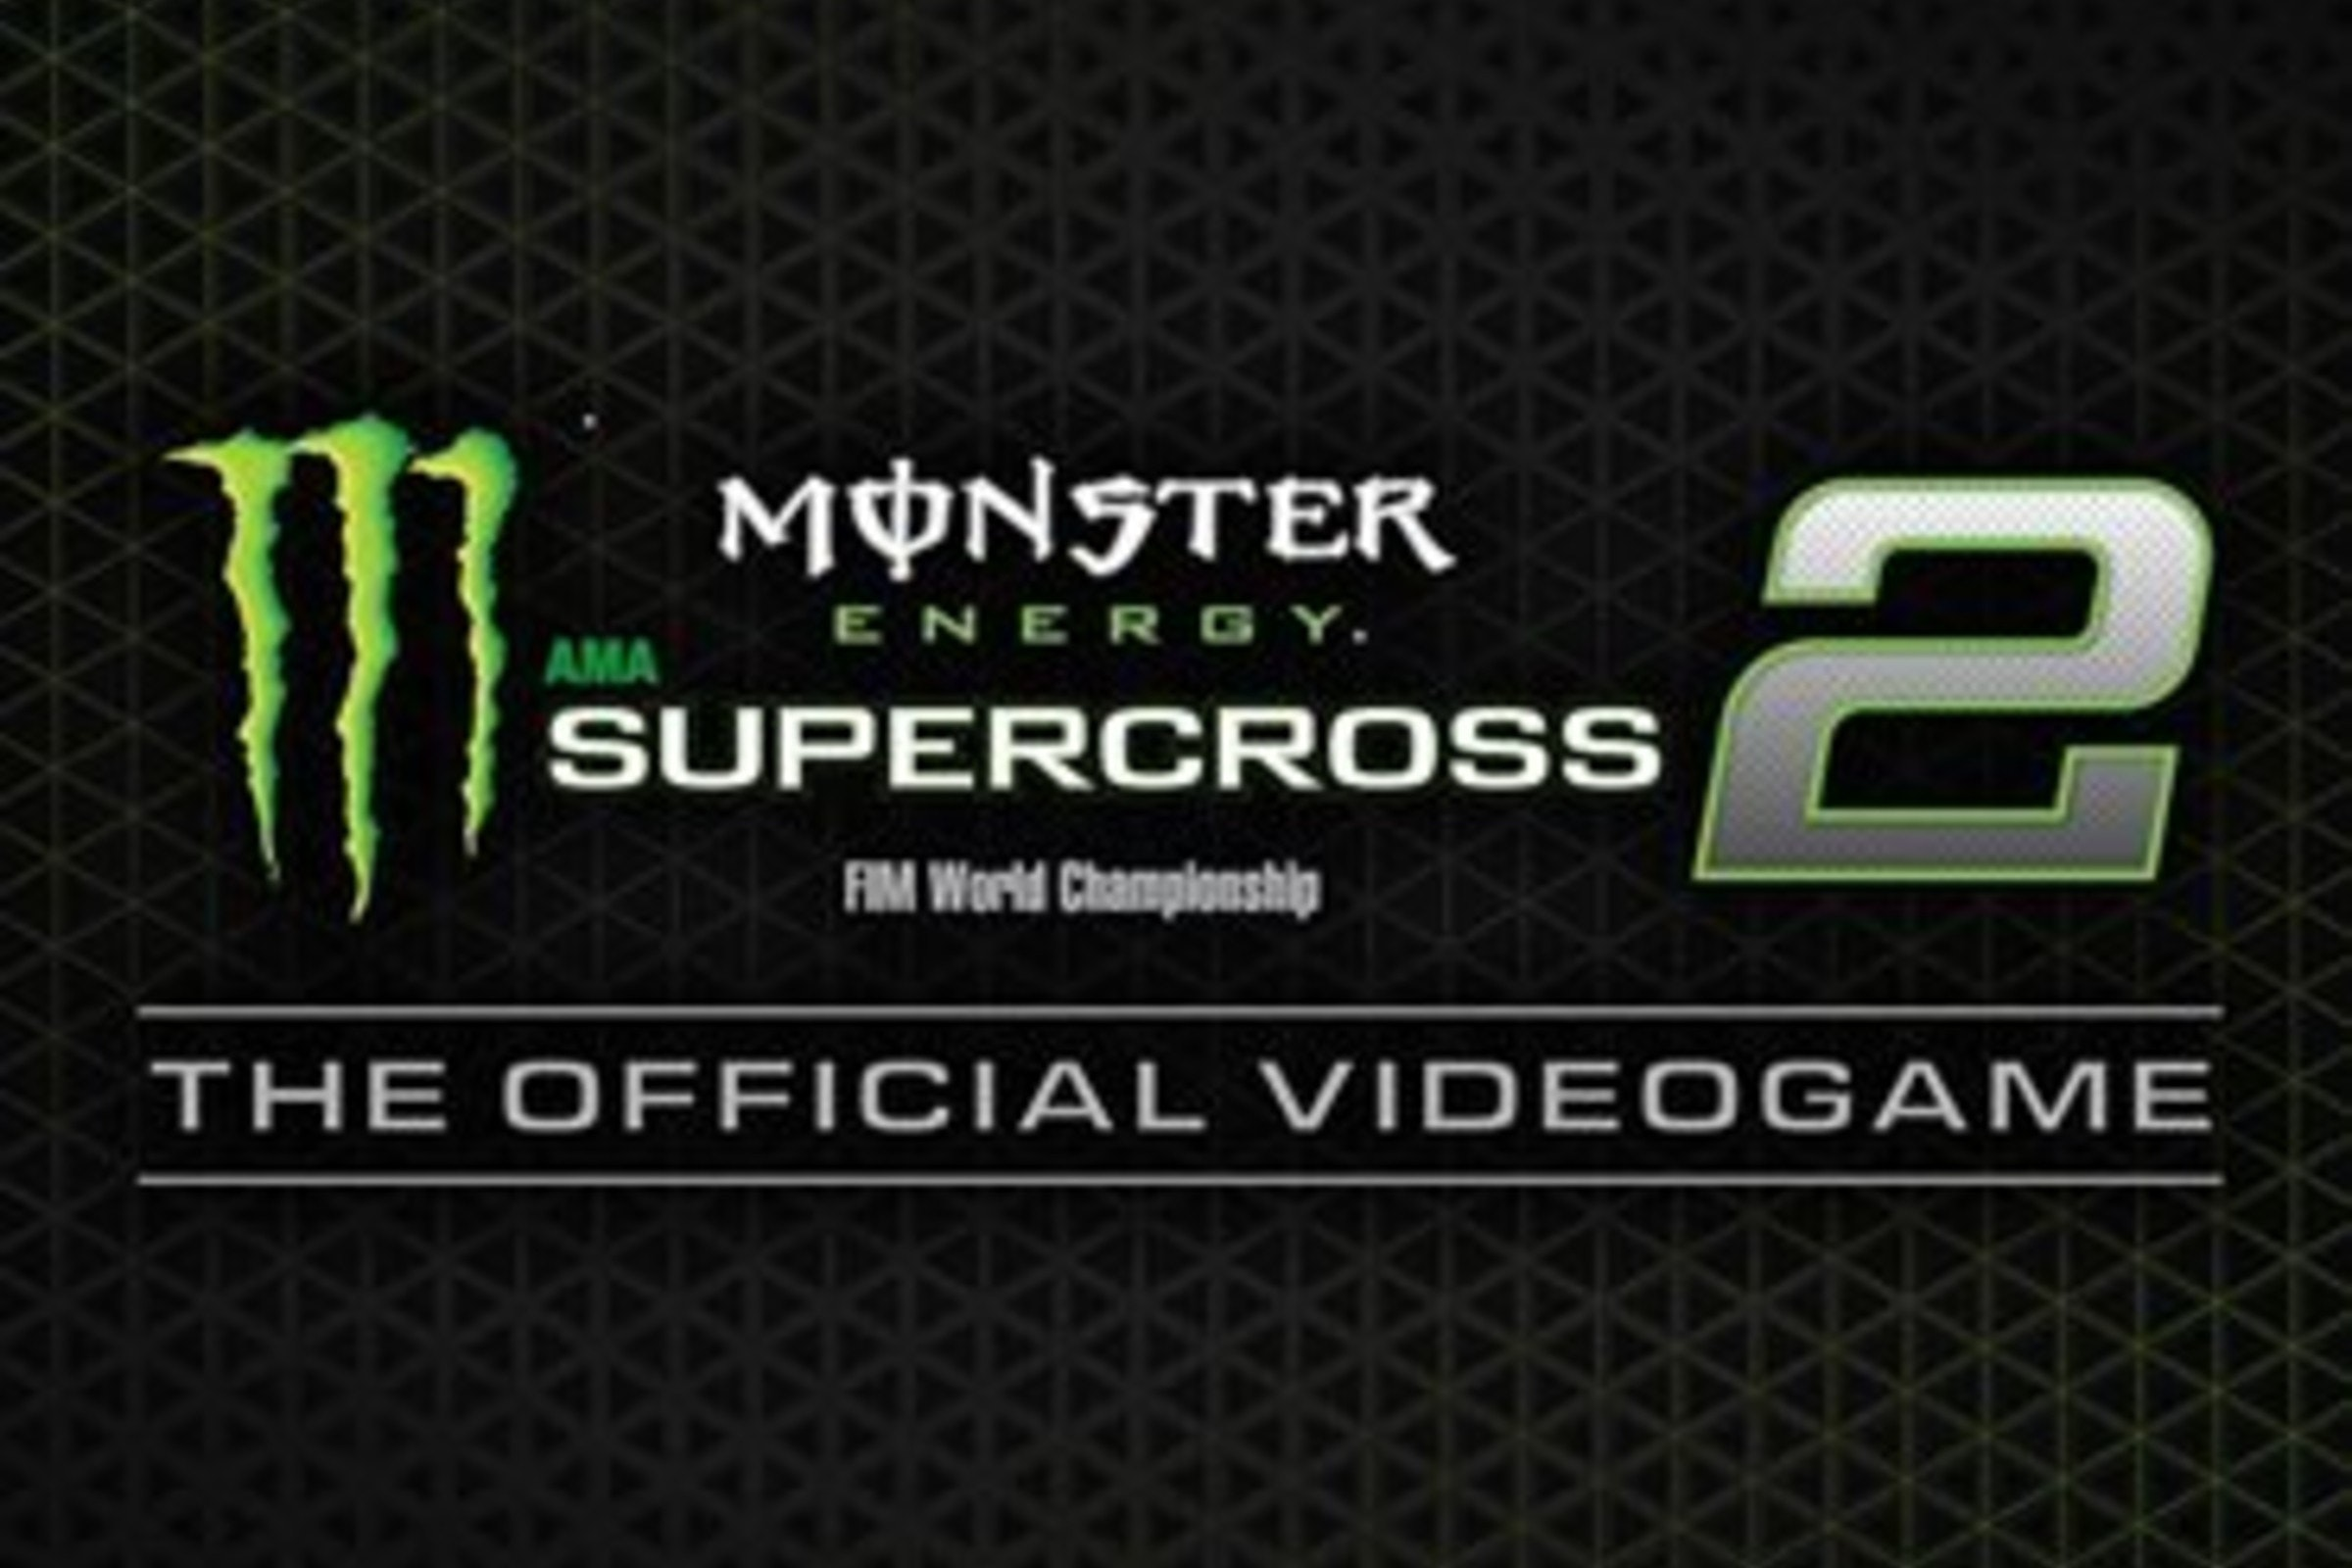 Monster energy coupons 2019